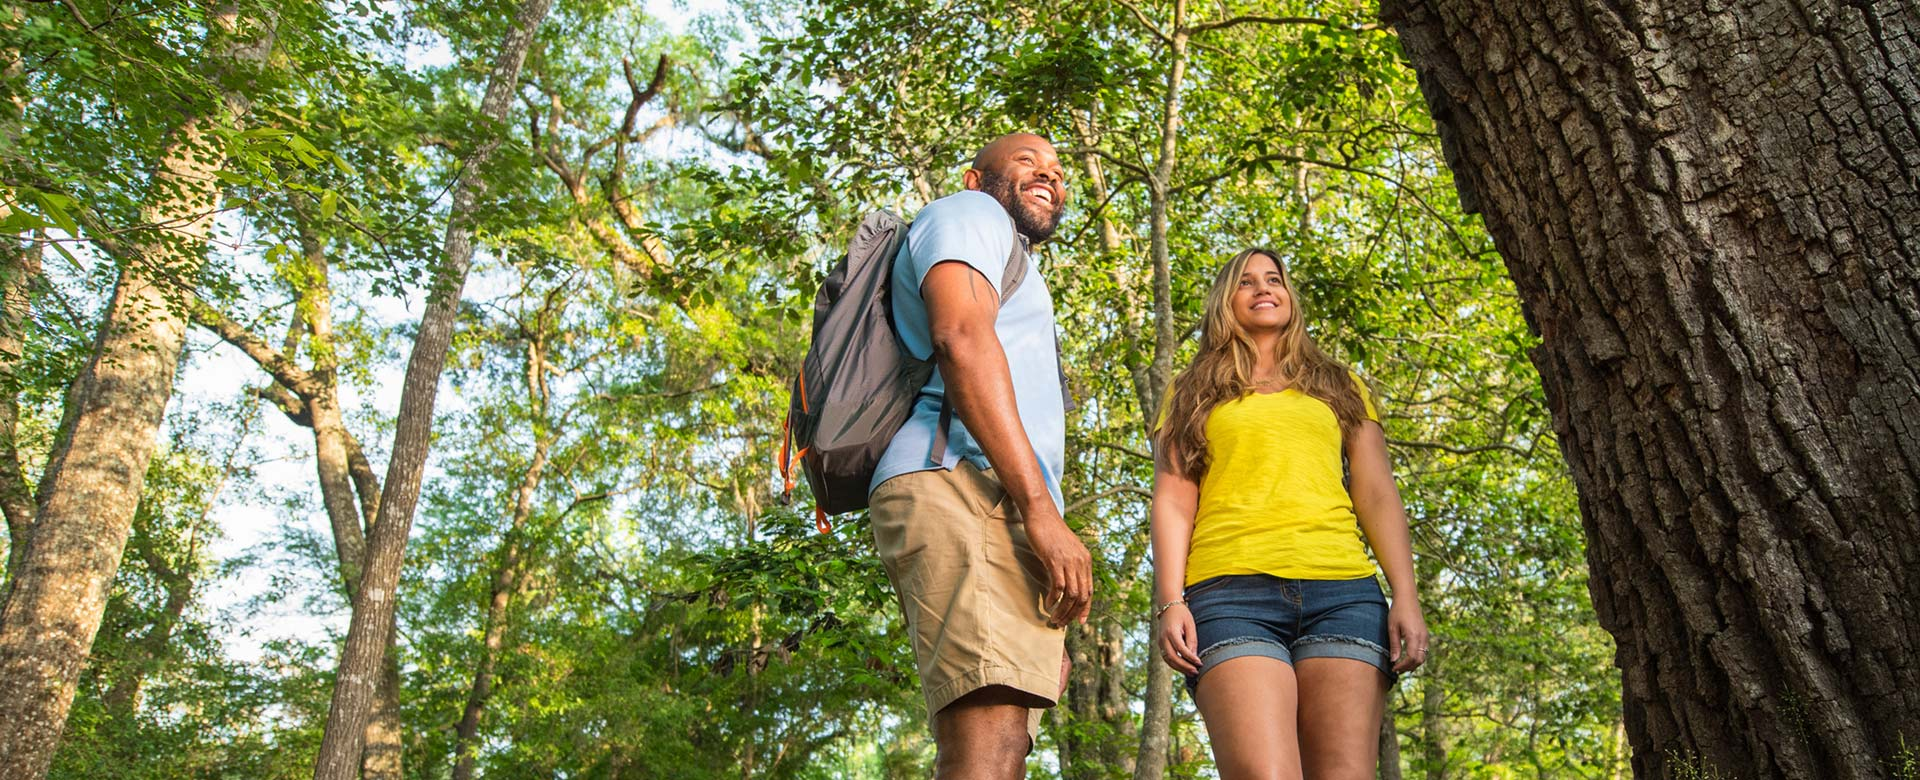 Couple smiling while hiking